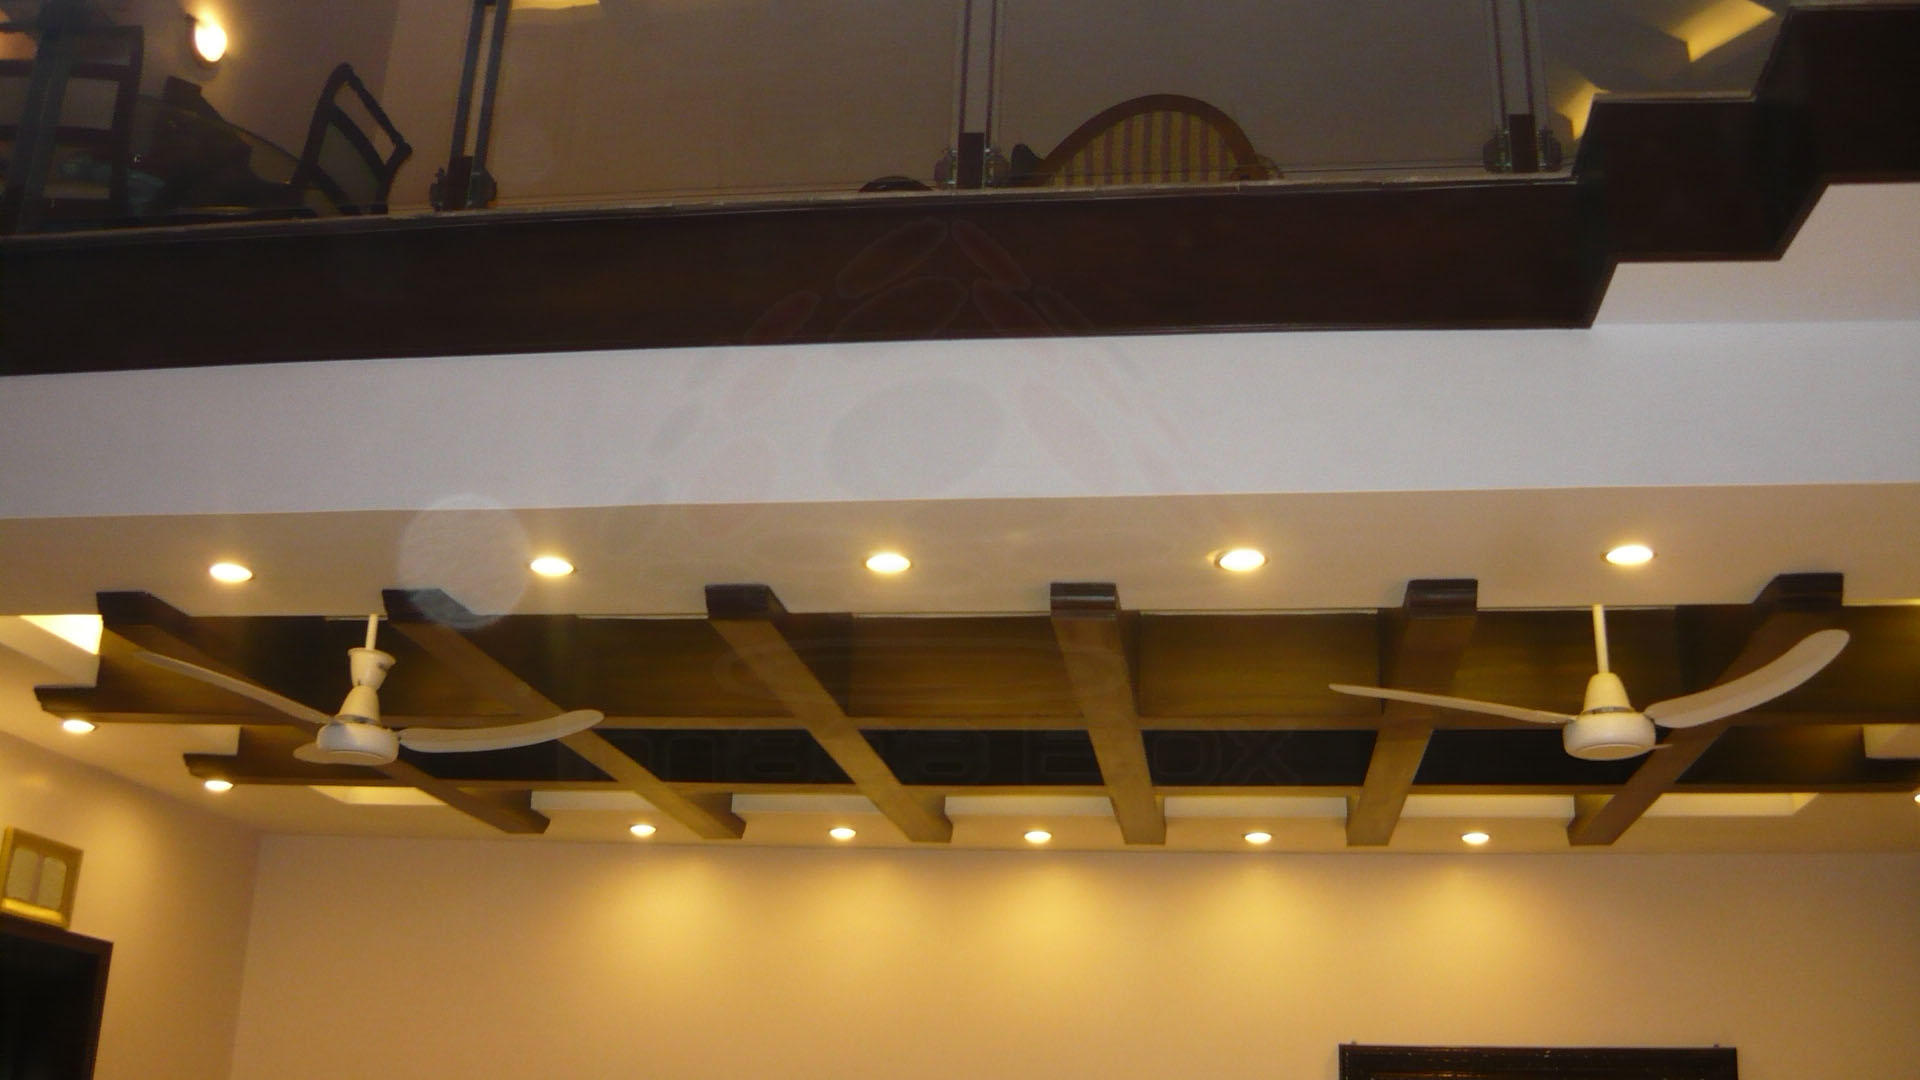 Magnificent LOWER FALSE CEILING - 2010 1920 x 1080 · 187 kB · jpeg